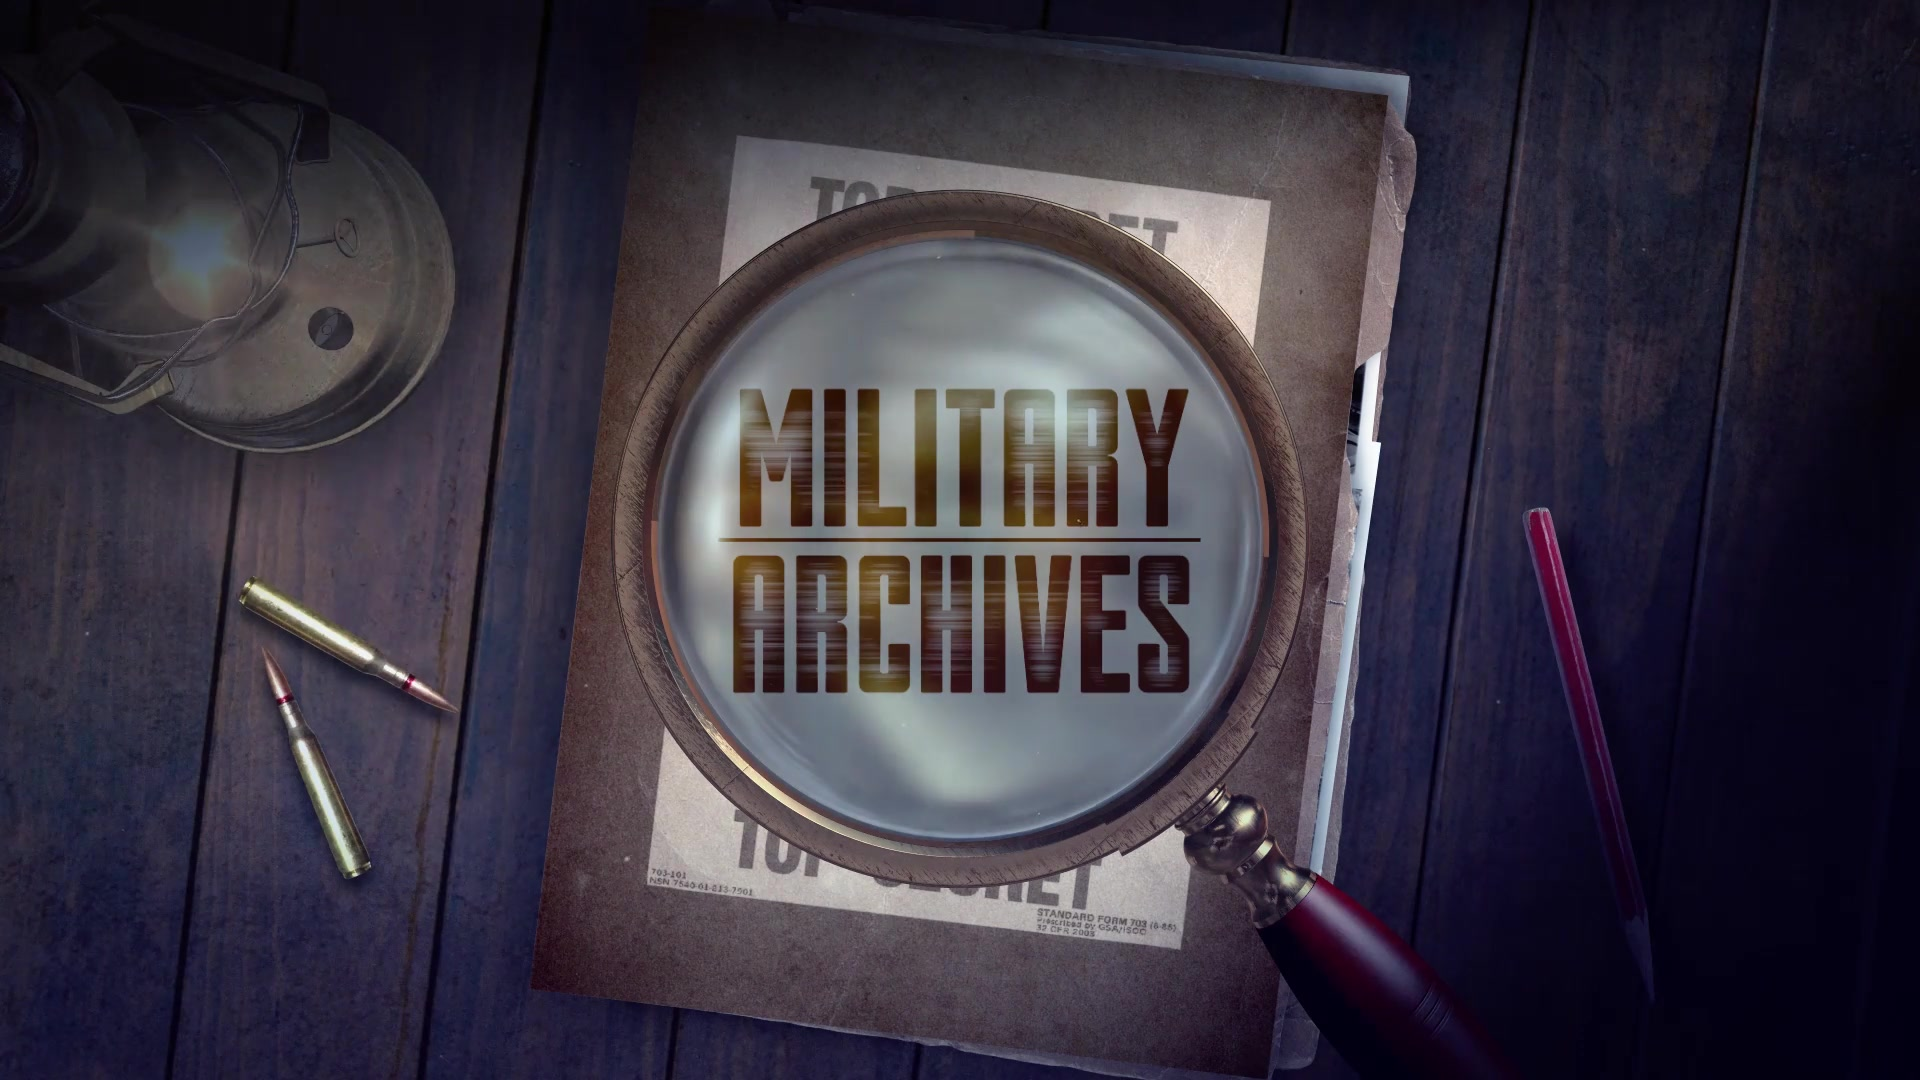 Military Archive Packages - Download Videohive 19525544